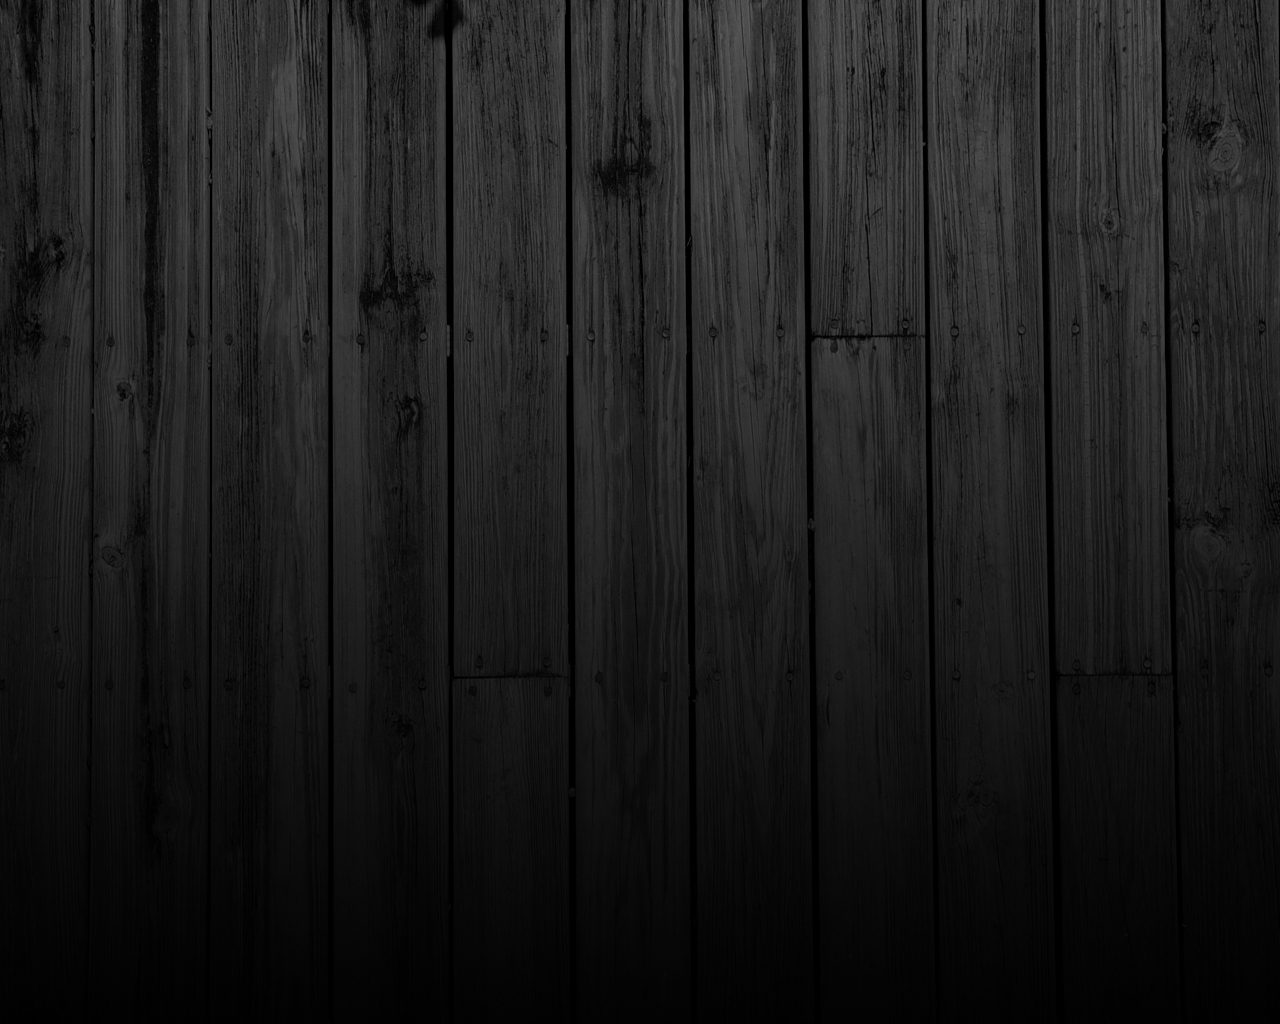 Dark Wooden Planks Desktop and mobile wallpaper Wallippo 1280x1024